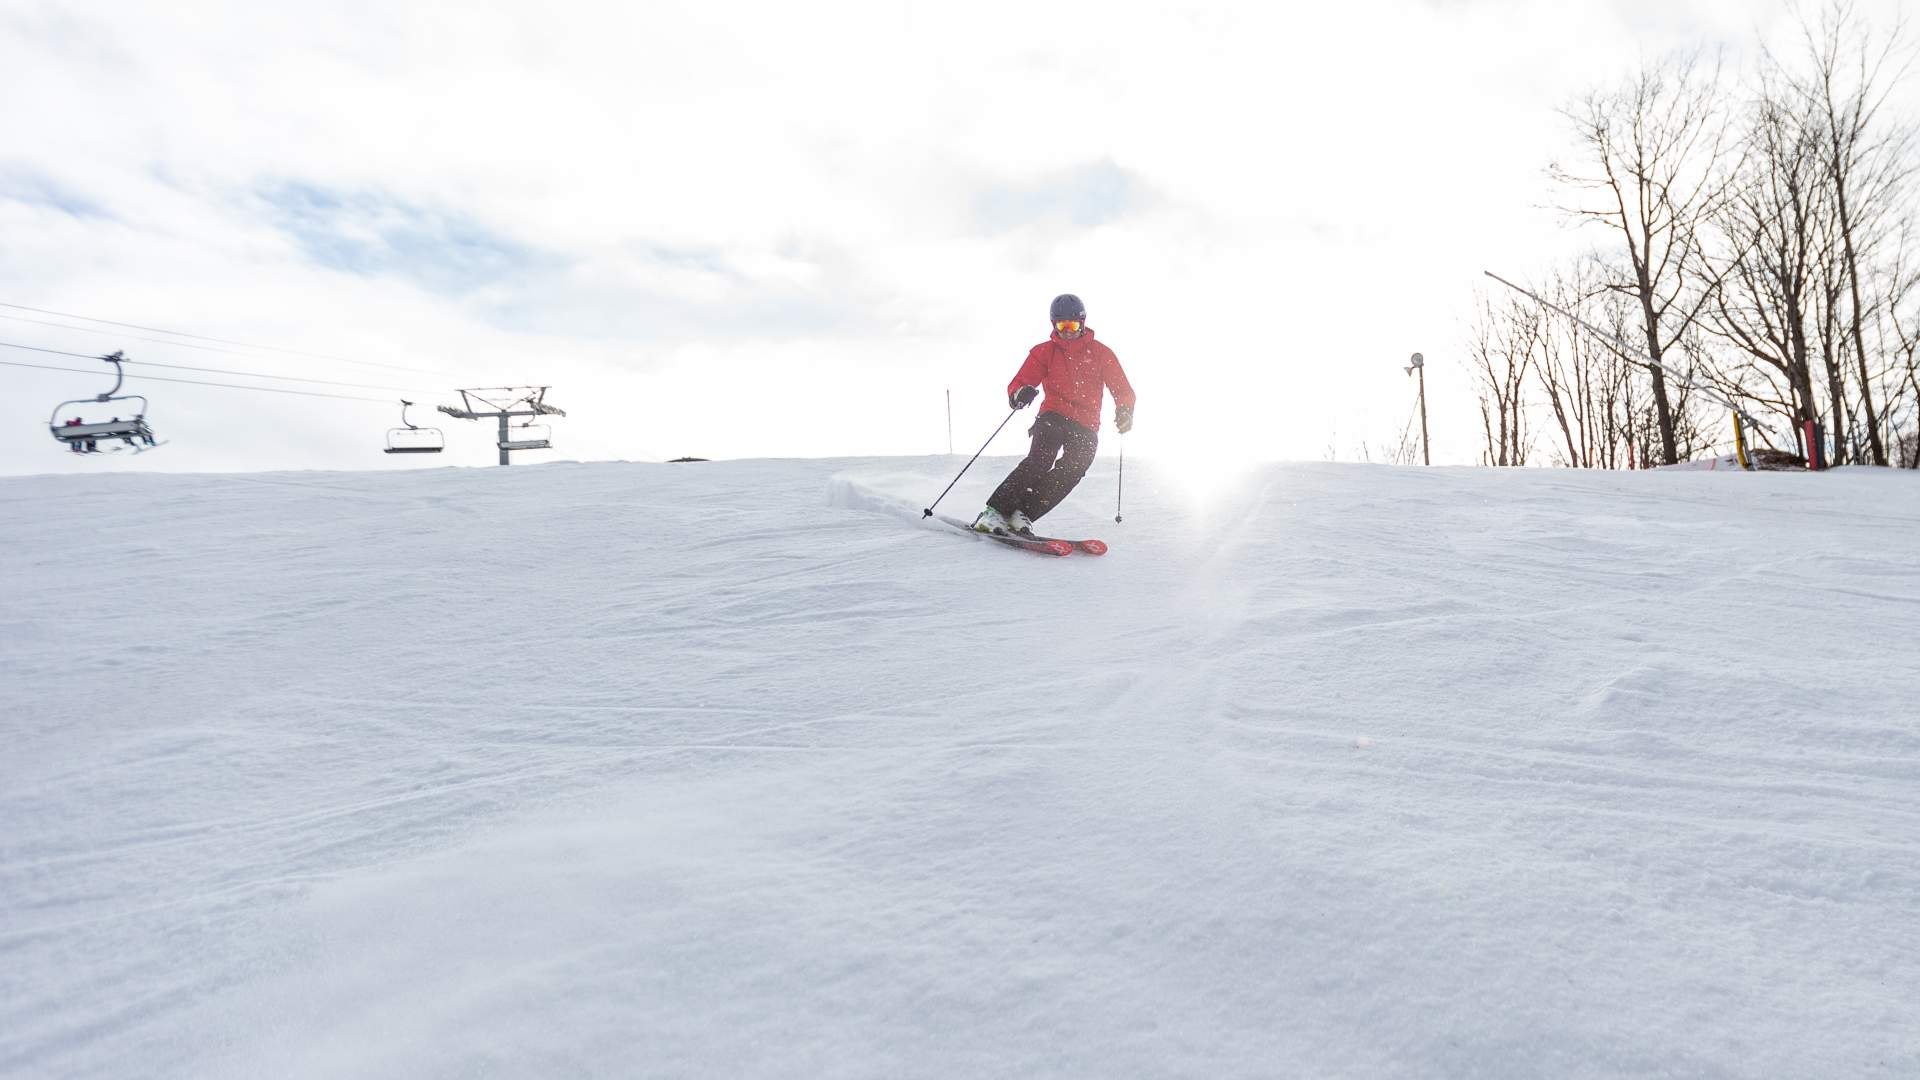 Male skier in a red jacket carving a turn at the top of the ski hill with the chairlift in the background